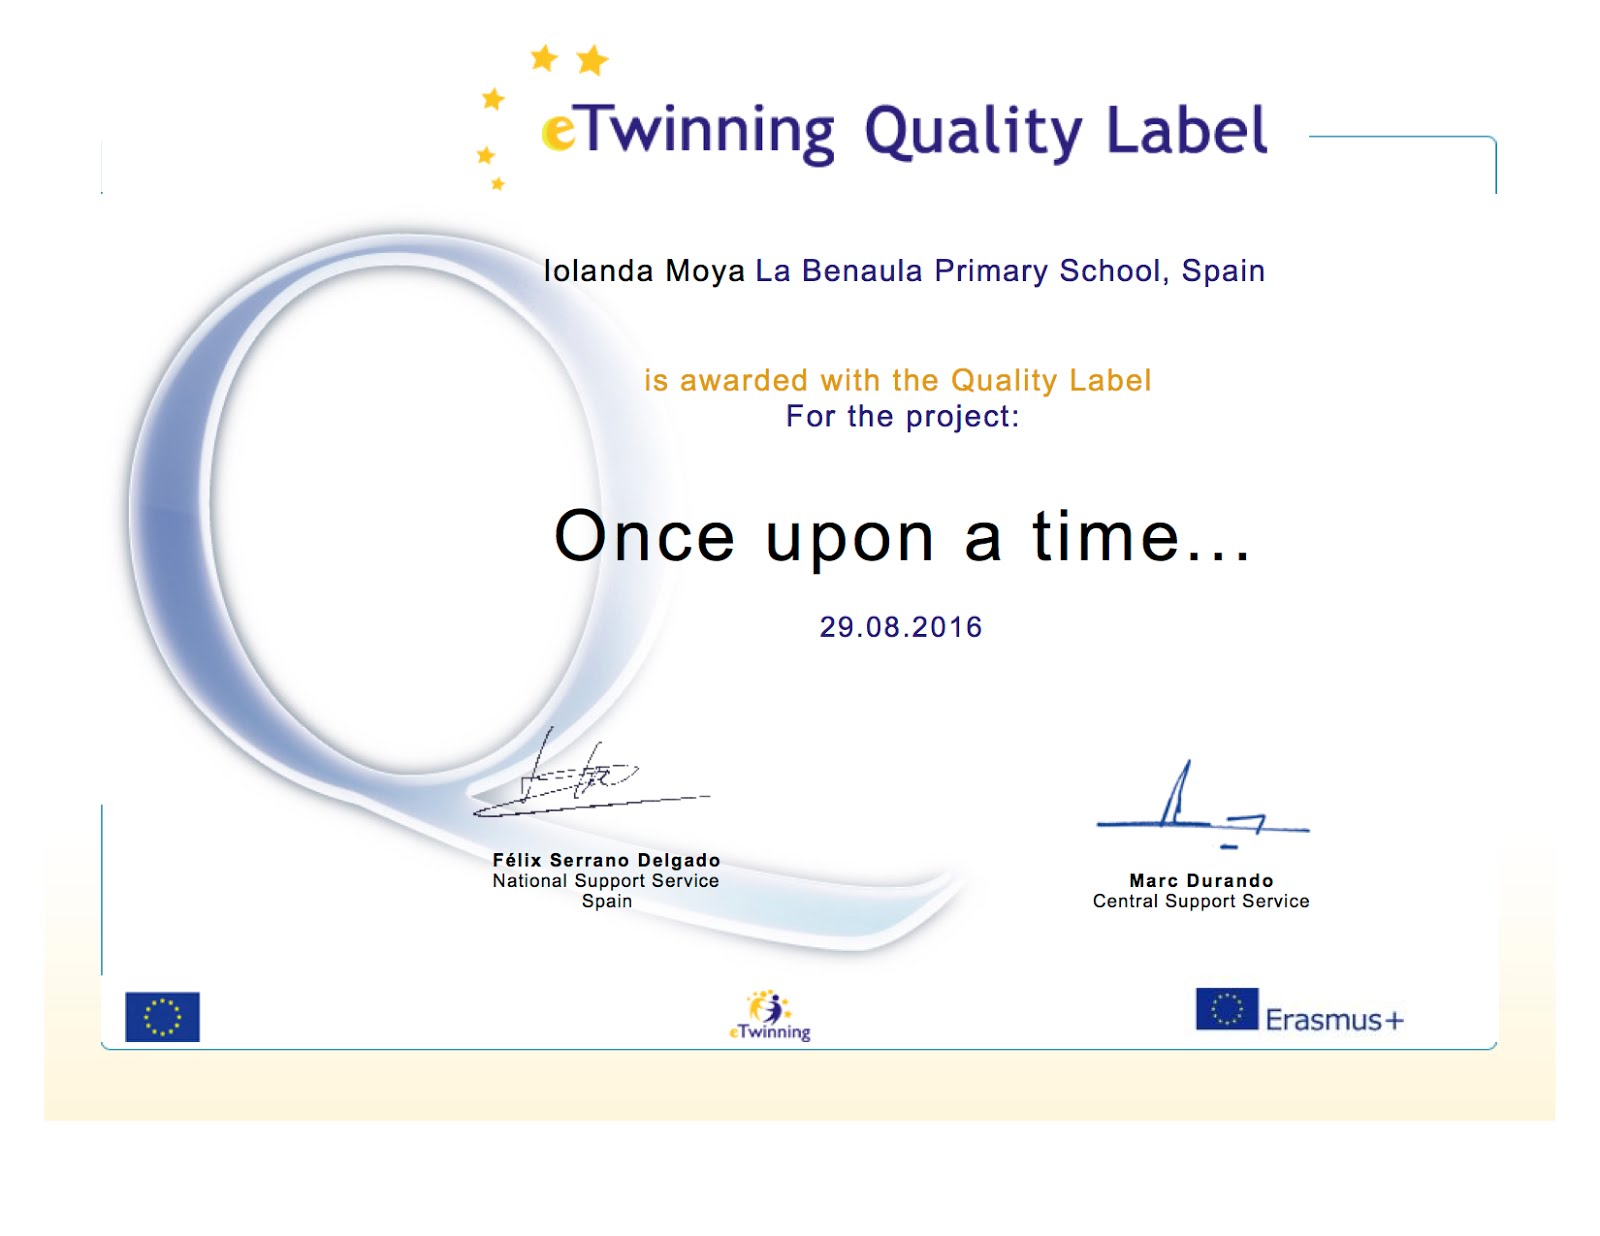 Segon Quality Label de l'escola La Benaula